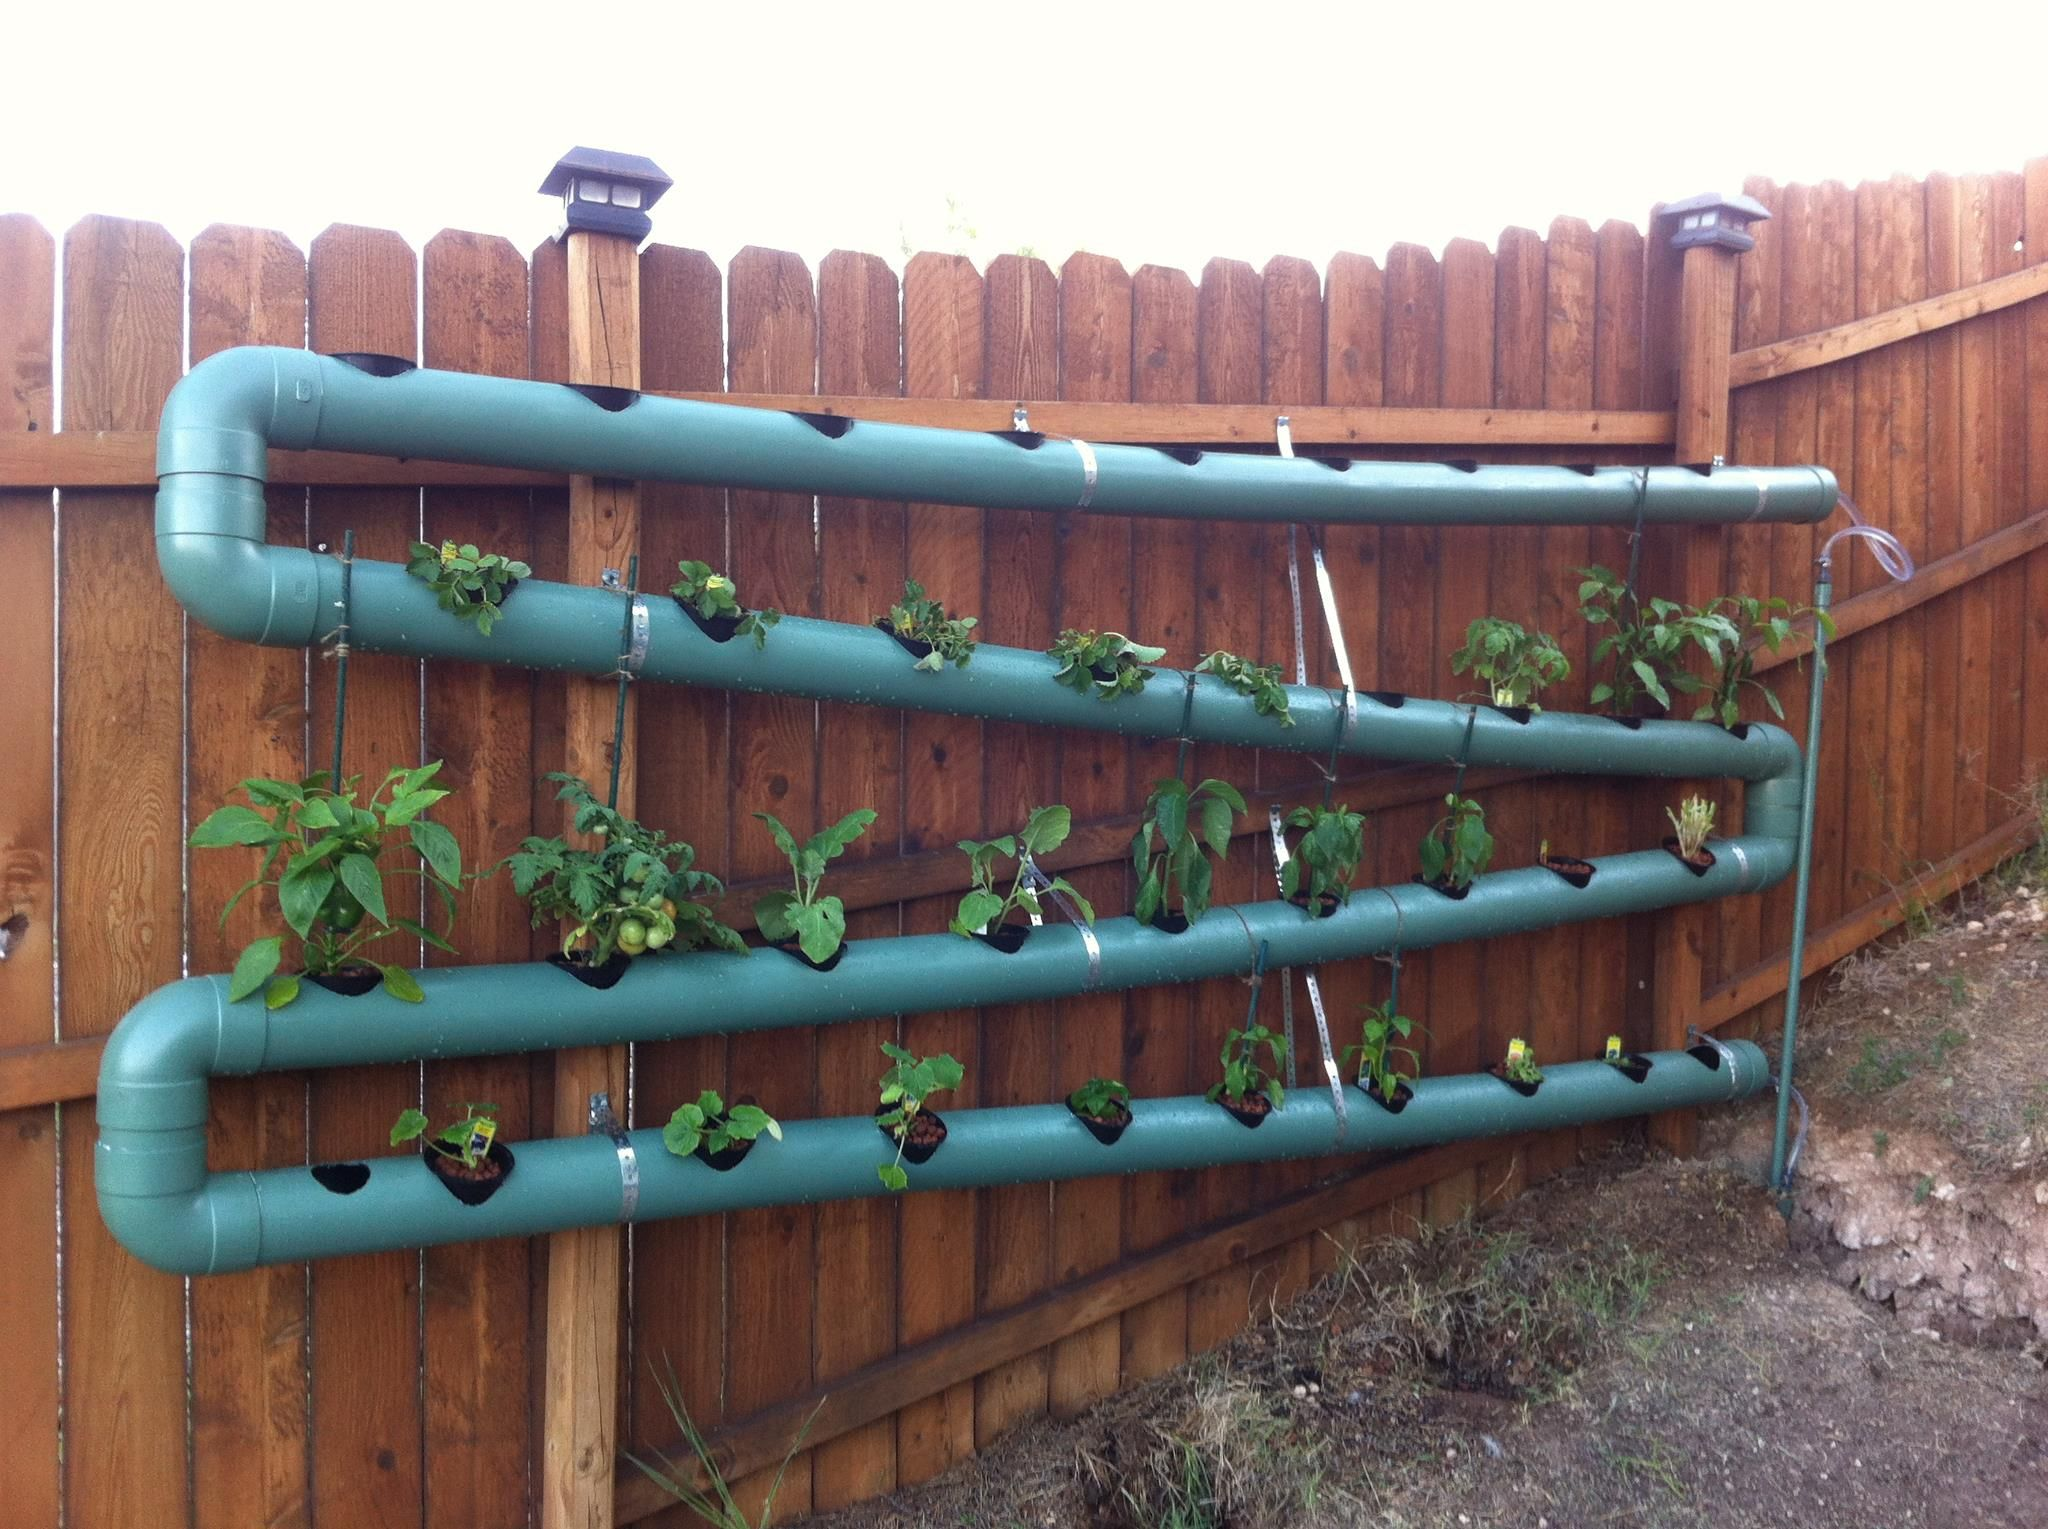 Do It Yourself Home Design: My DIY Aquaponics System. So Far So Good. 40Ft Of PVC And